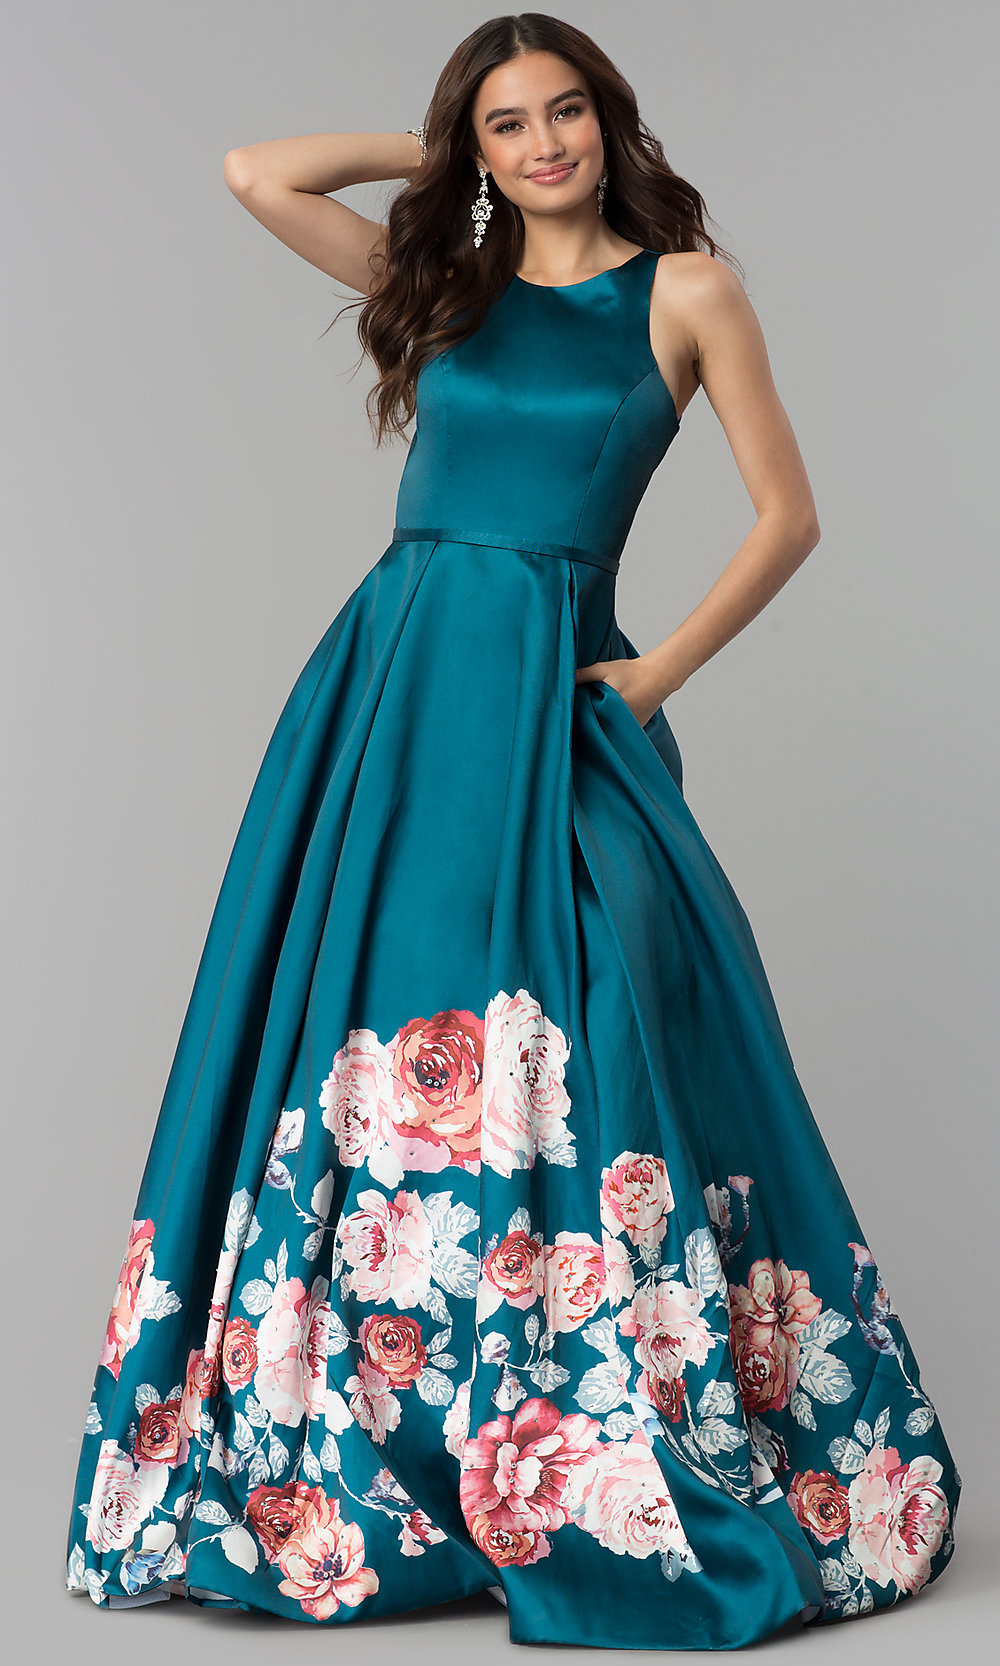 Teal Long Floral-Print Sleeveless Prom Dress- PromGirl